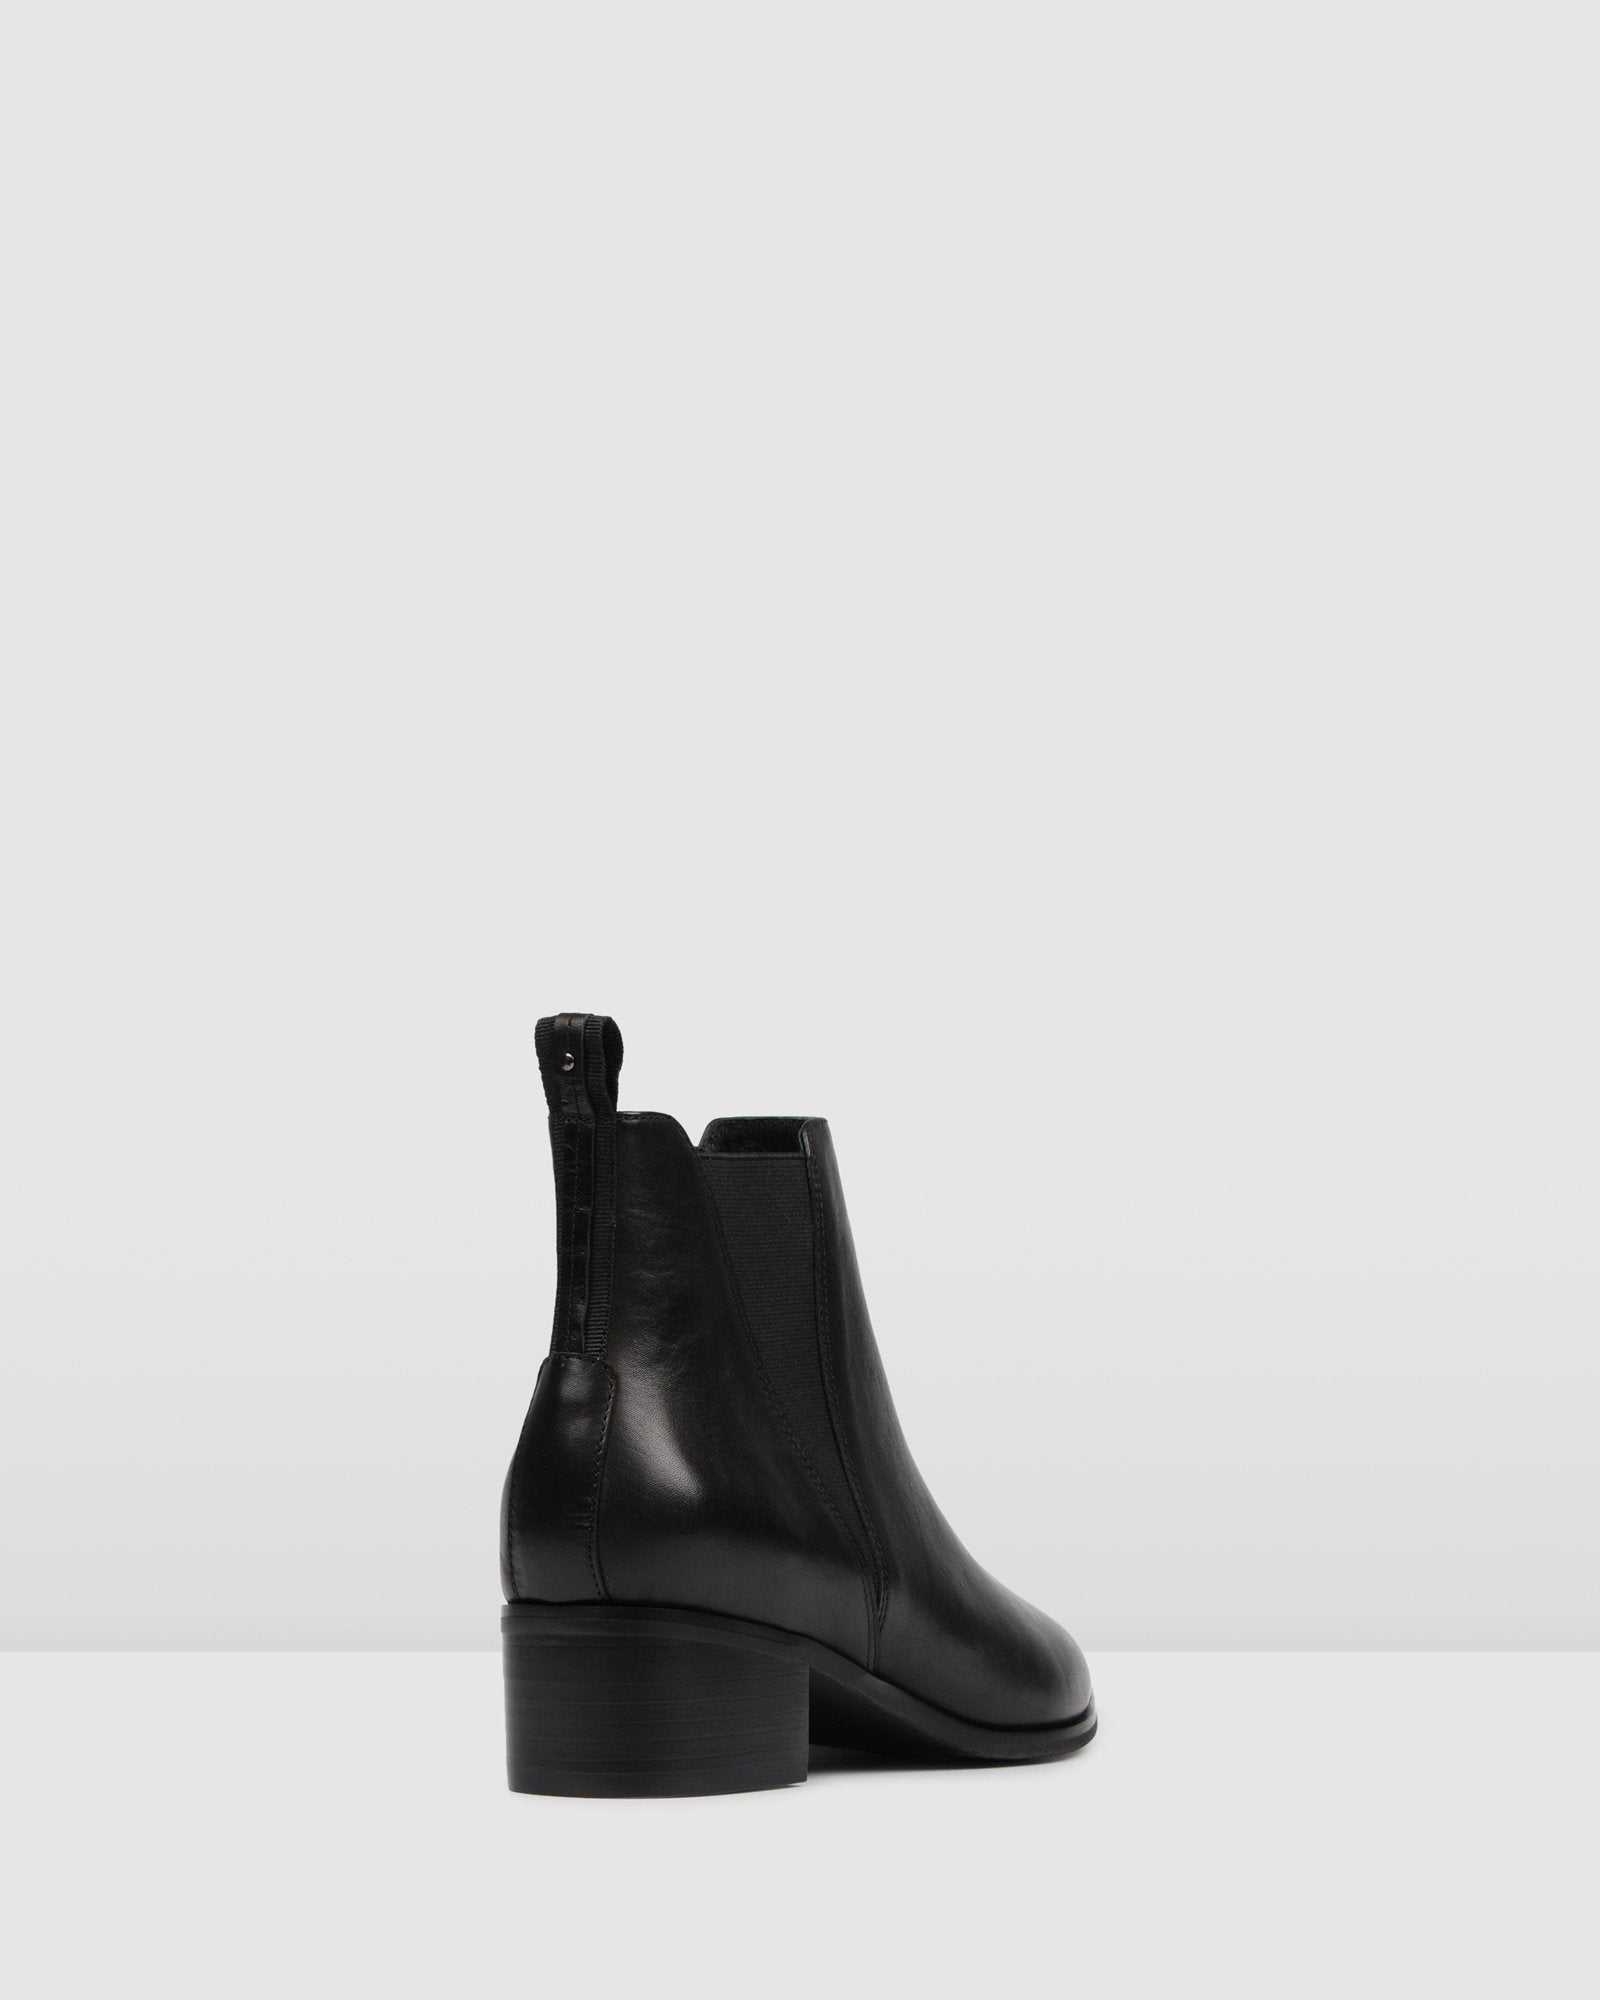 LAYLA FLAT ANKLE BOOTS BLACK LEATHER